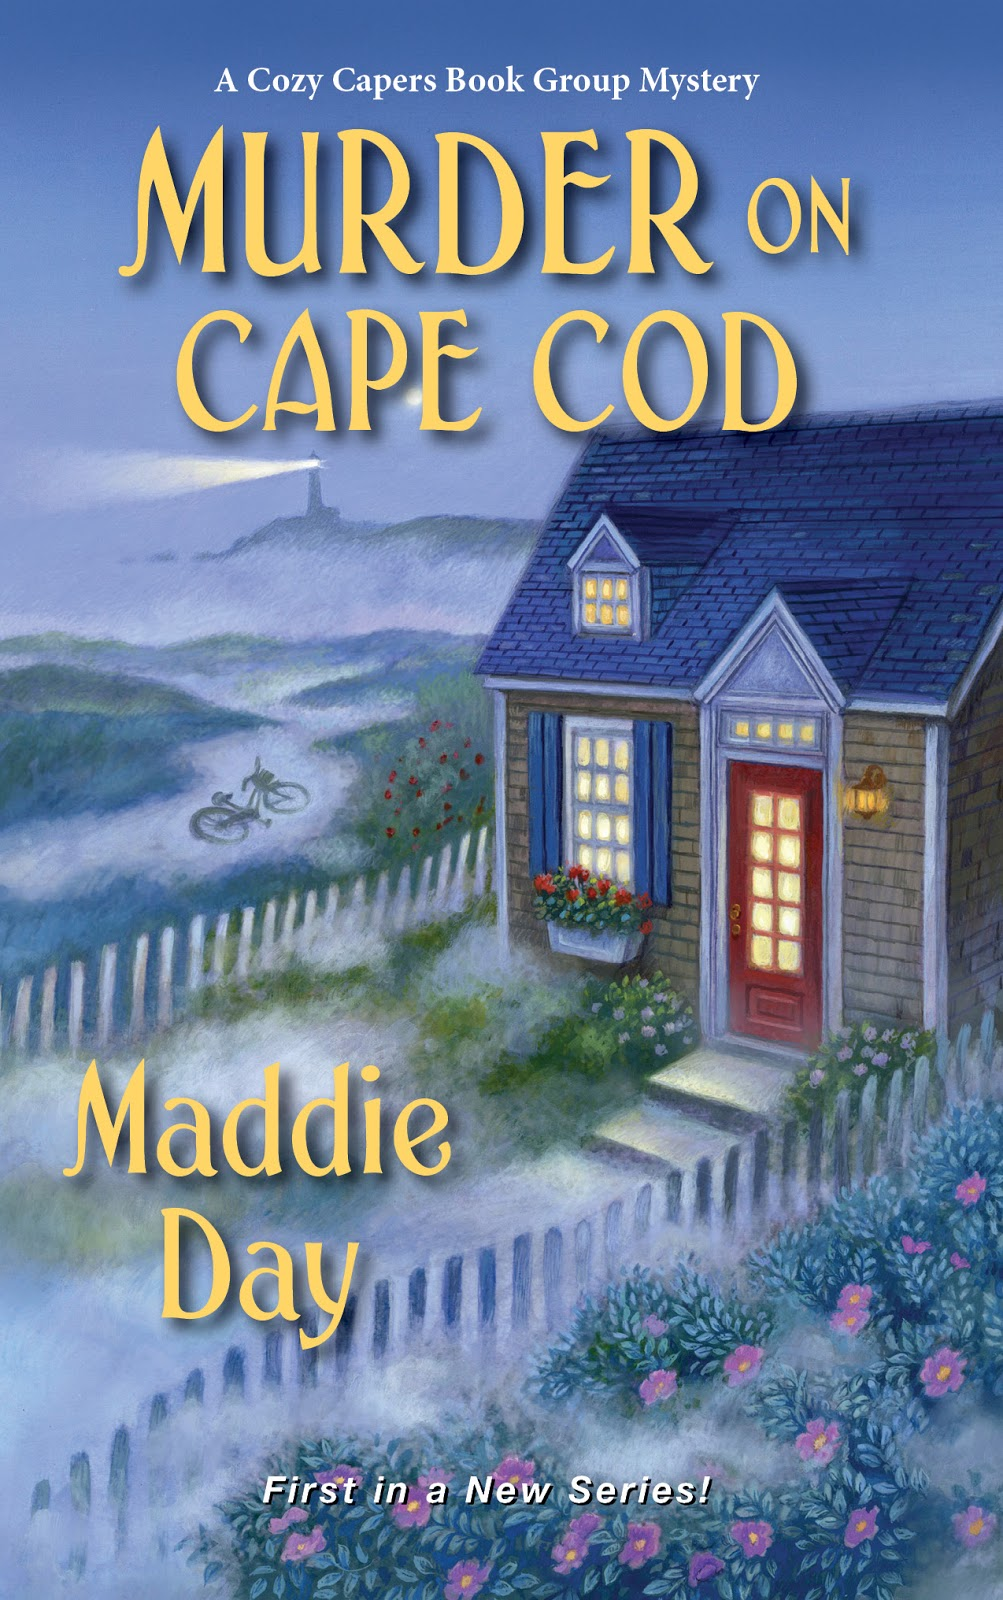 Interview with mystery author Maddie Day (aka Edith Maxwell)